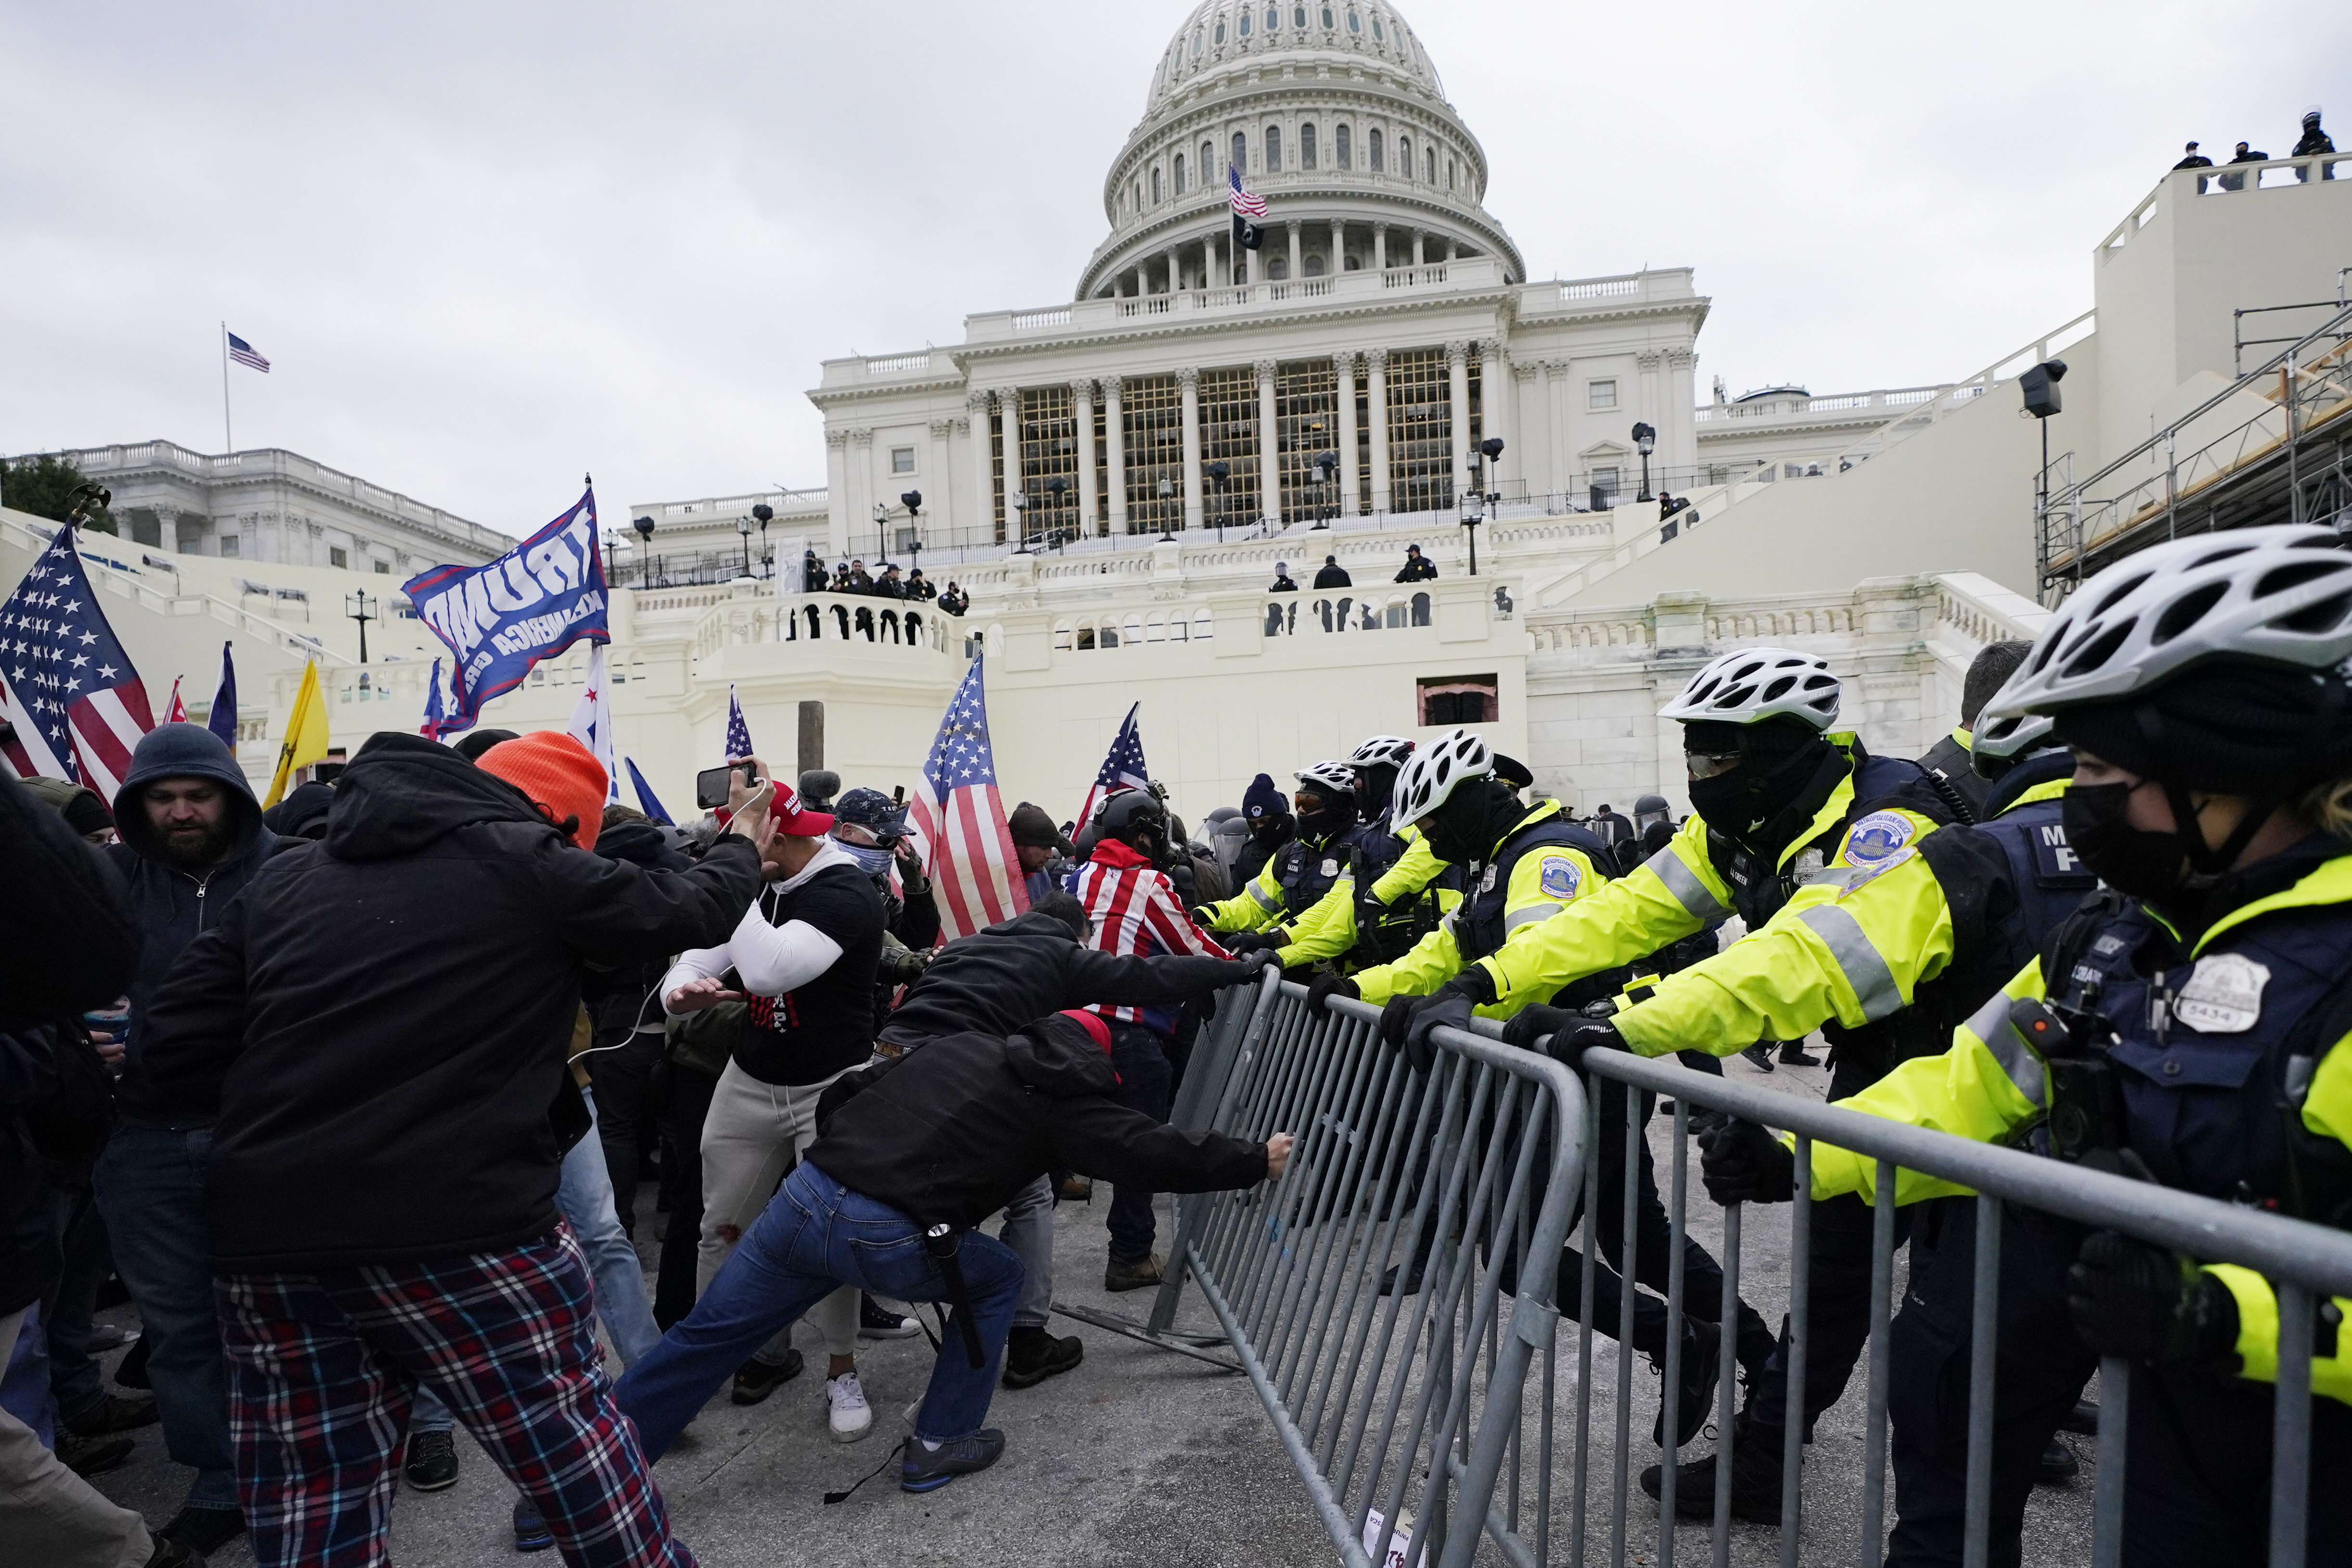 Trump supporters try to break through a police barrier on their way to occupy the Capitol in Washington.